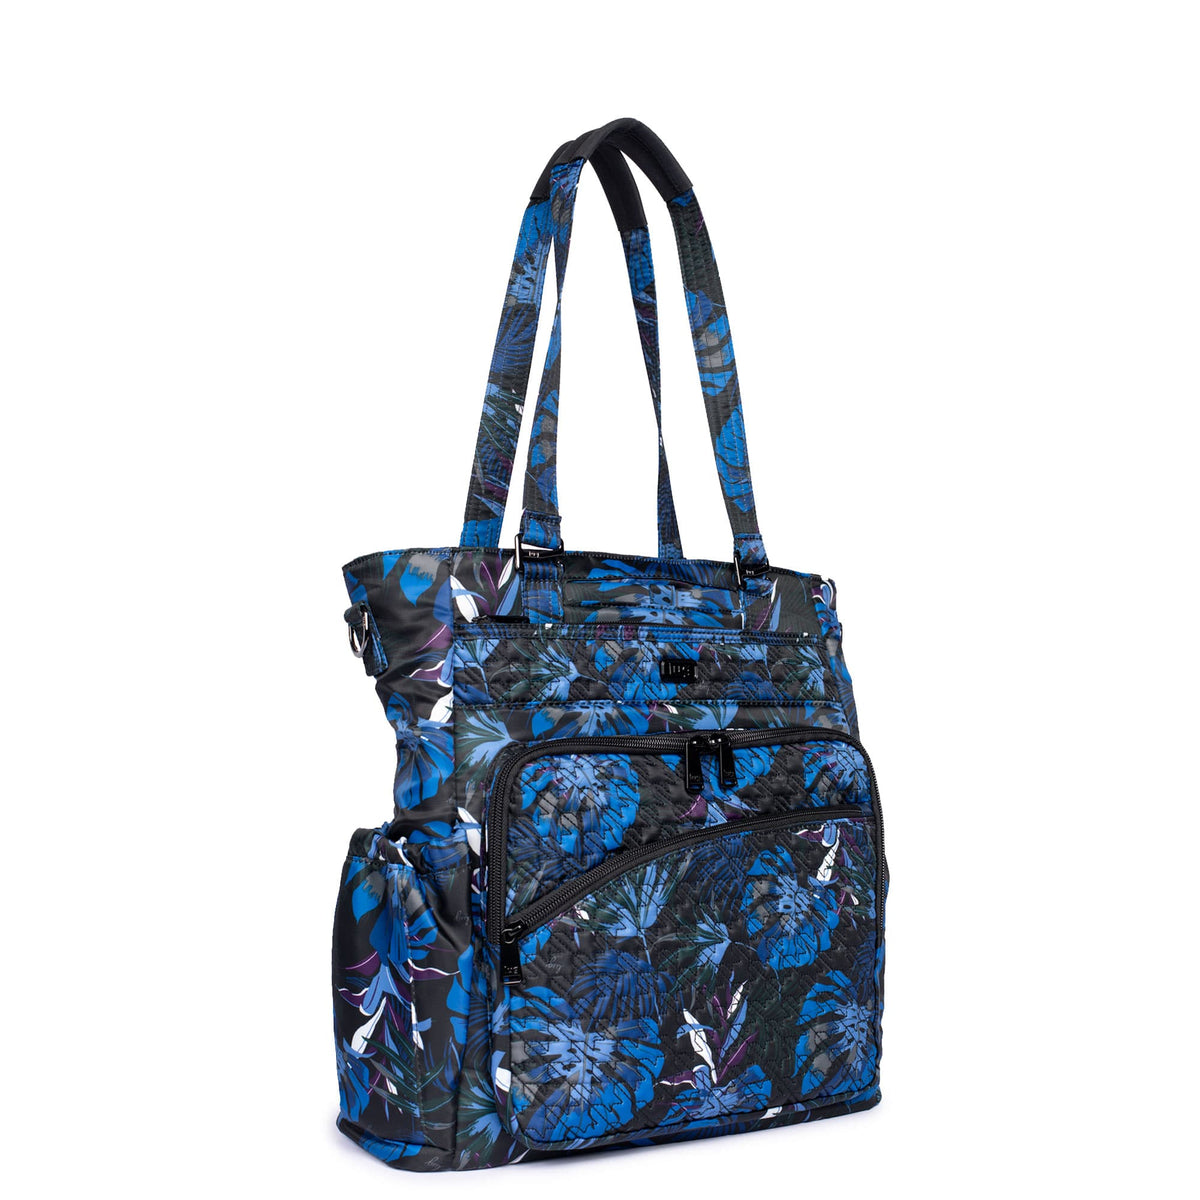 Ace 2 Convertible Tote Bag